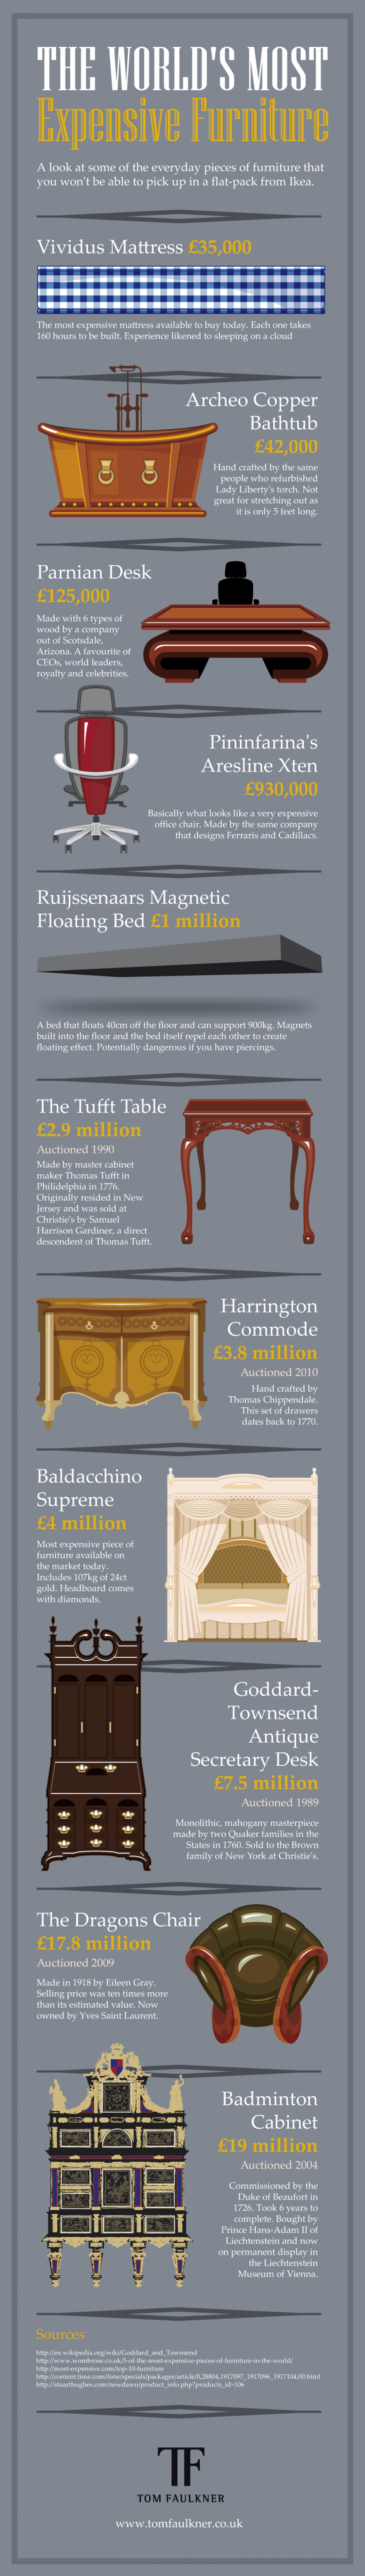 5. The World's Most Expensive Custom Furniture